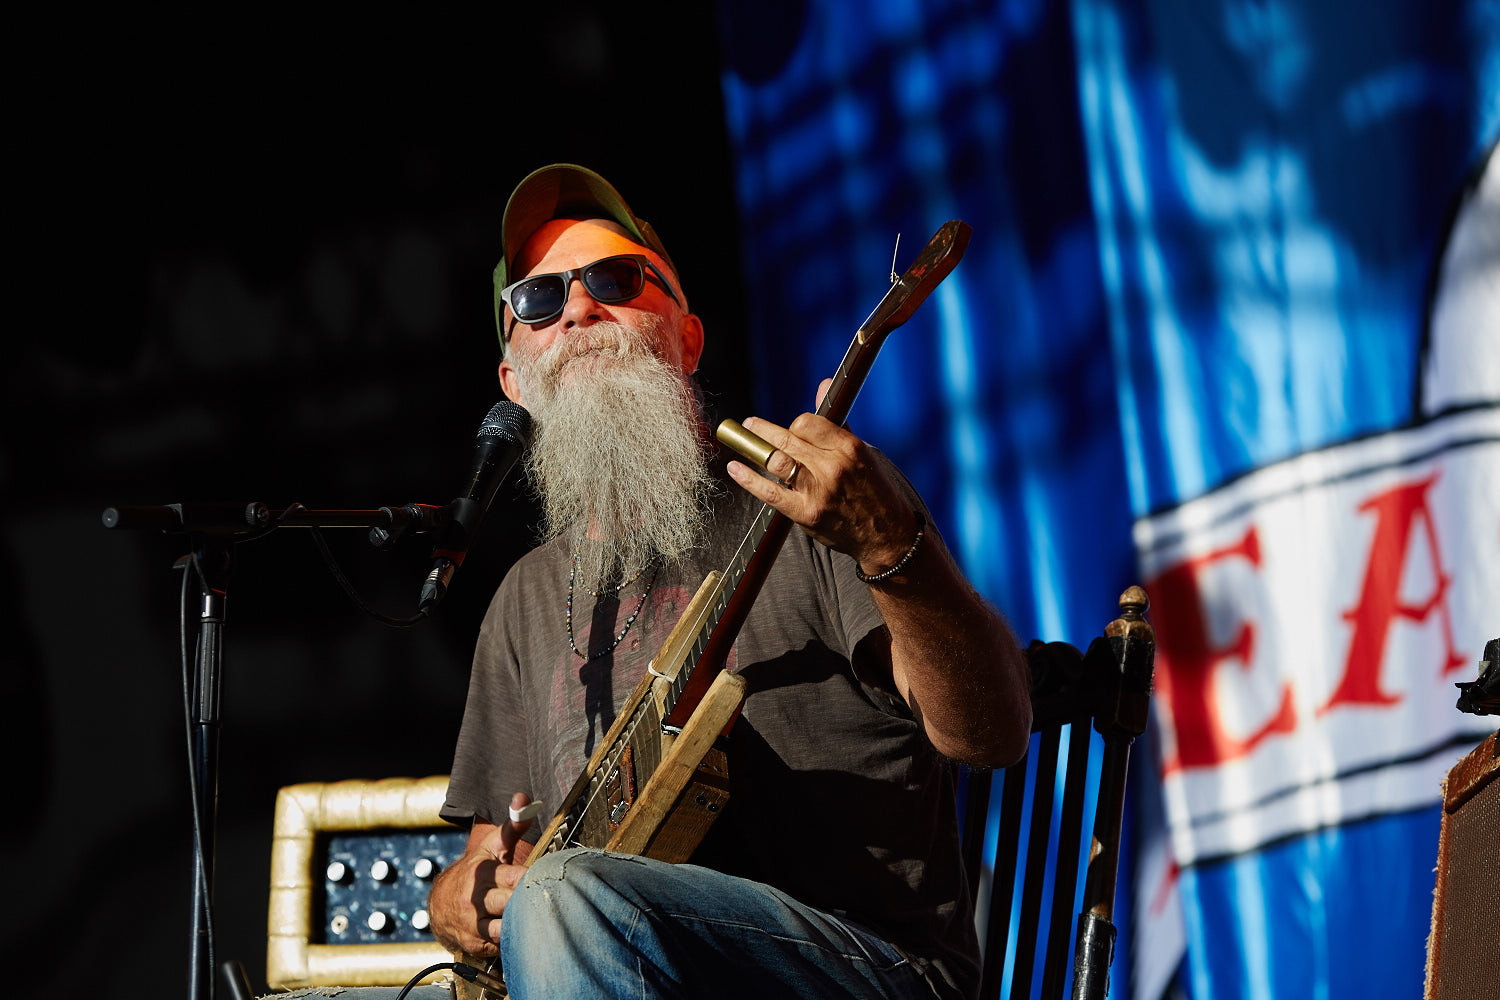 Seasick Steve performing on the second day of Boardmasters music festival, Watergate Bay, Cornwall 2015